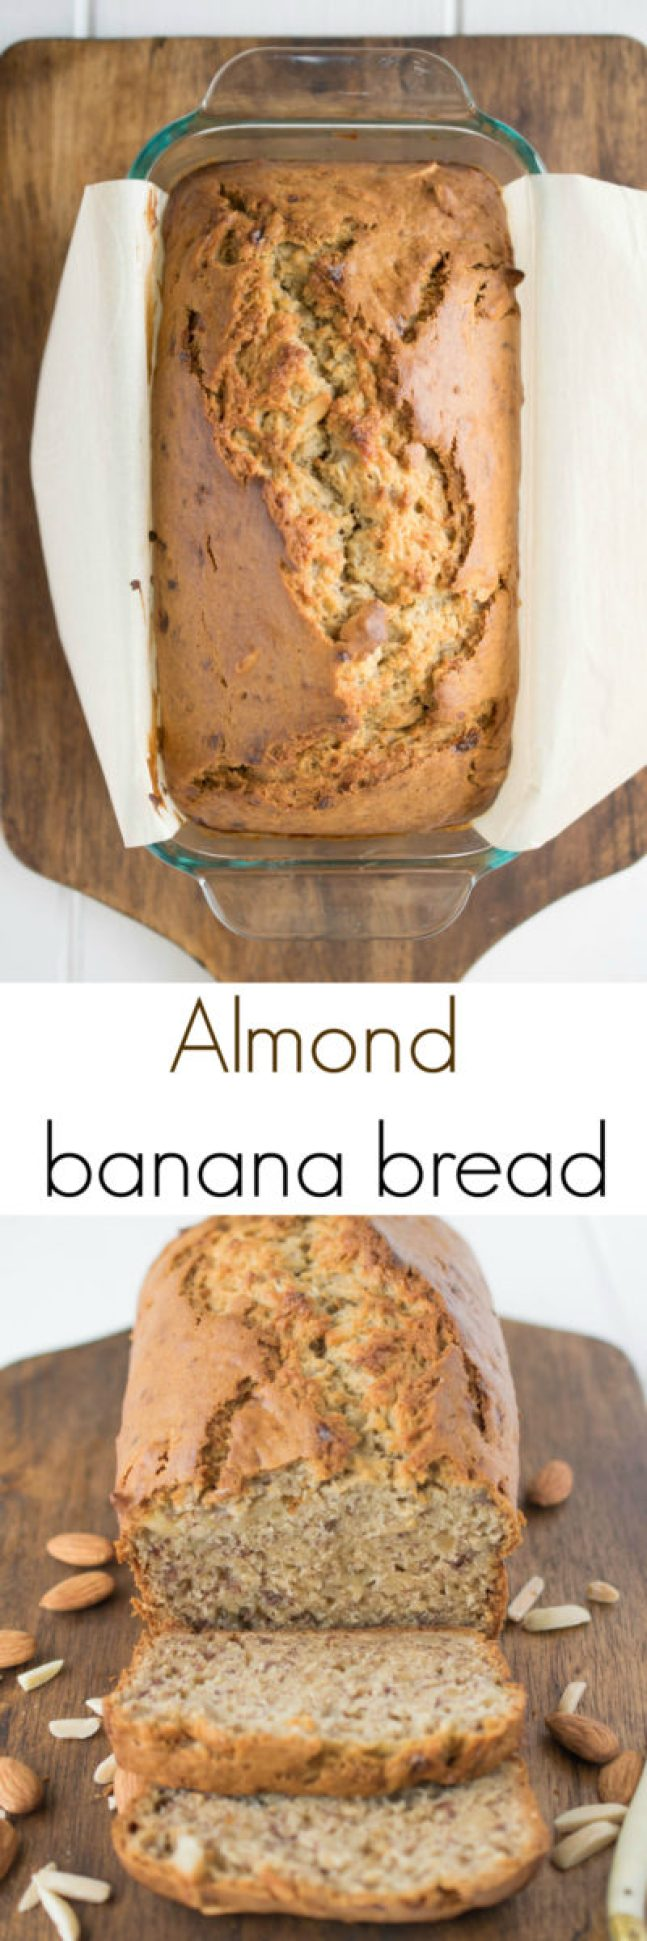 Almond banana bread. Almond banana bread. My regular recipe is taken to a moist, lighter level with the use of new Dream Ultimate Almond